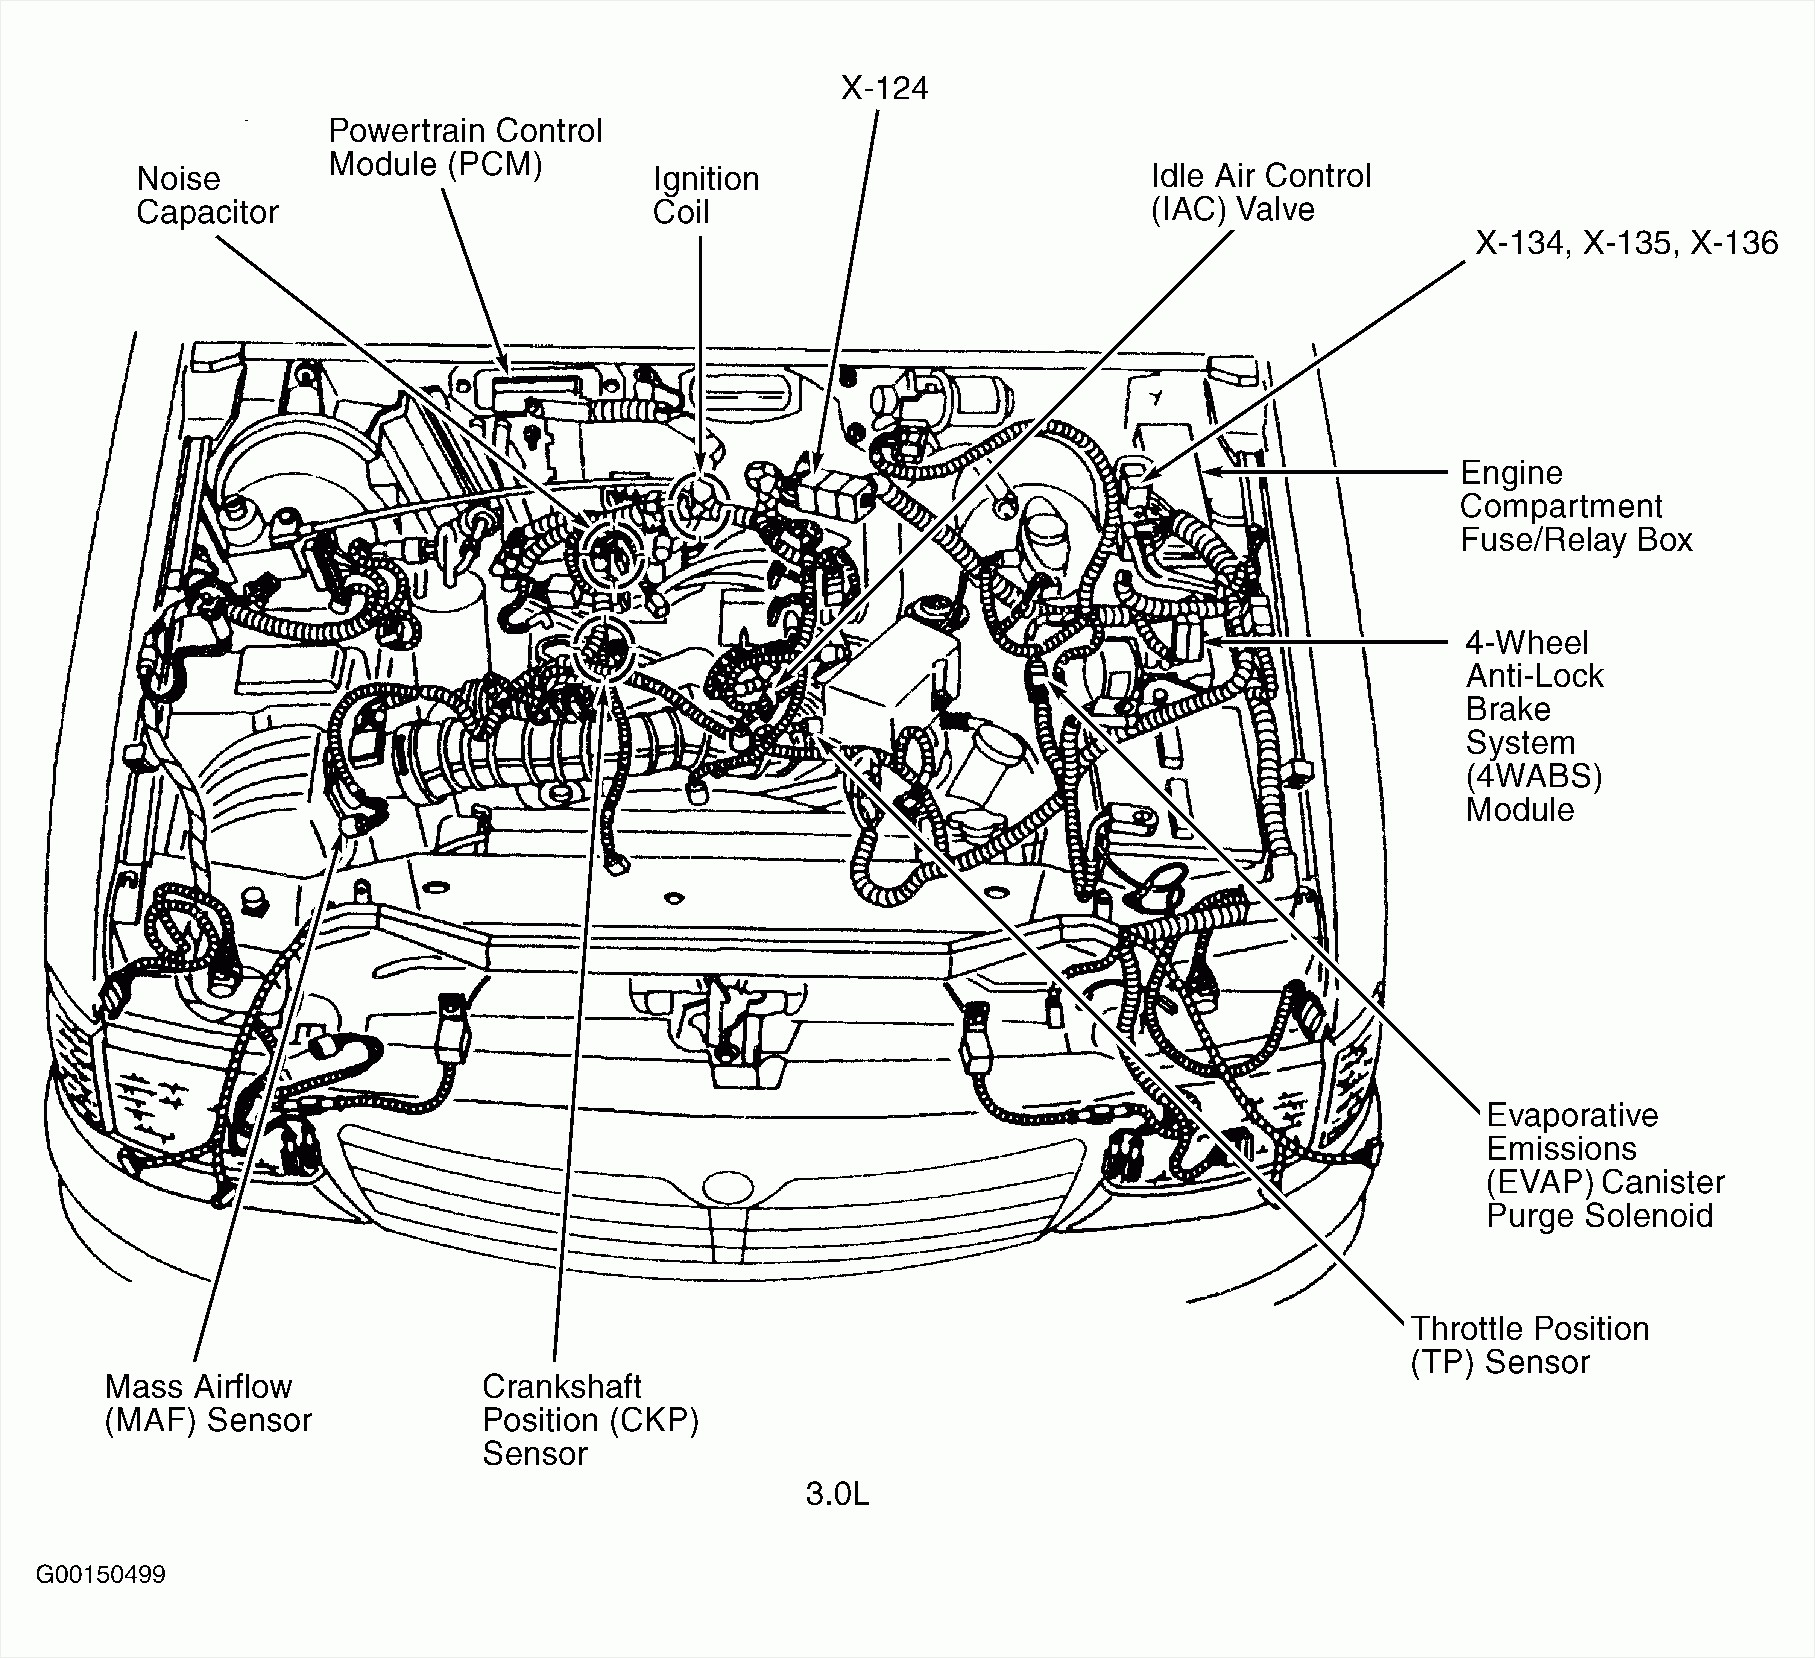 2003 Ford Excursion Engine Diagram - top electrical wiring ... Infiniti M Engine Diagram on isuzu ascender engine diagram, jaguar xj6 engine diagram, audi s6 engine diagram, ford gt engine diagram, lexus rx330 engine diagram, cadillac xlr engine diagram, jeep comanche engine diagram, nissan rogue engine diagram, mercedes 500 engine diagram, porsche cayenne engine diagram, bmw m3 engine diagram, subaru baja engine diagram, suzuki sx4 engine diagram, plymouth voyager engine diagram, acura tsx engine diagram, nissan 240sx engine diagram, buick regal engine diagram, maserati quattroporte engine diagram, saturn s series engine diagram, porsche 356 engine diagram,